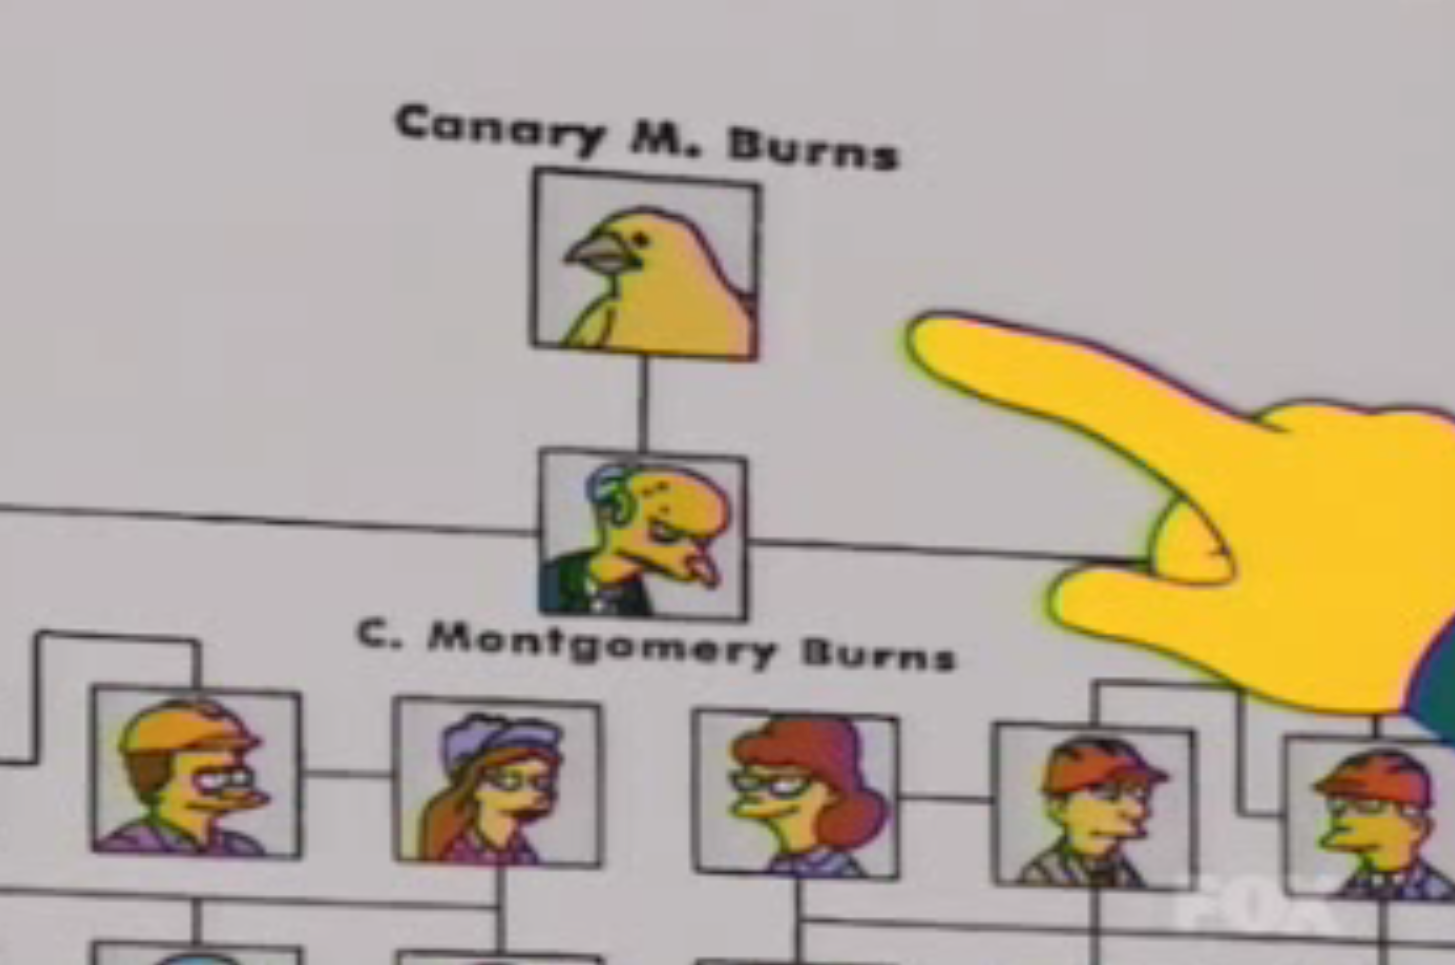 Canary M. Burns - Simpsons Wiki